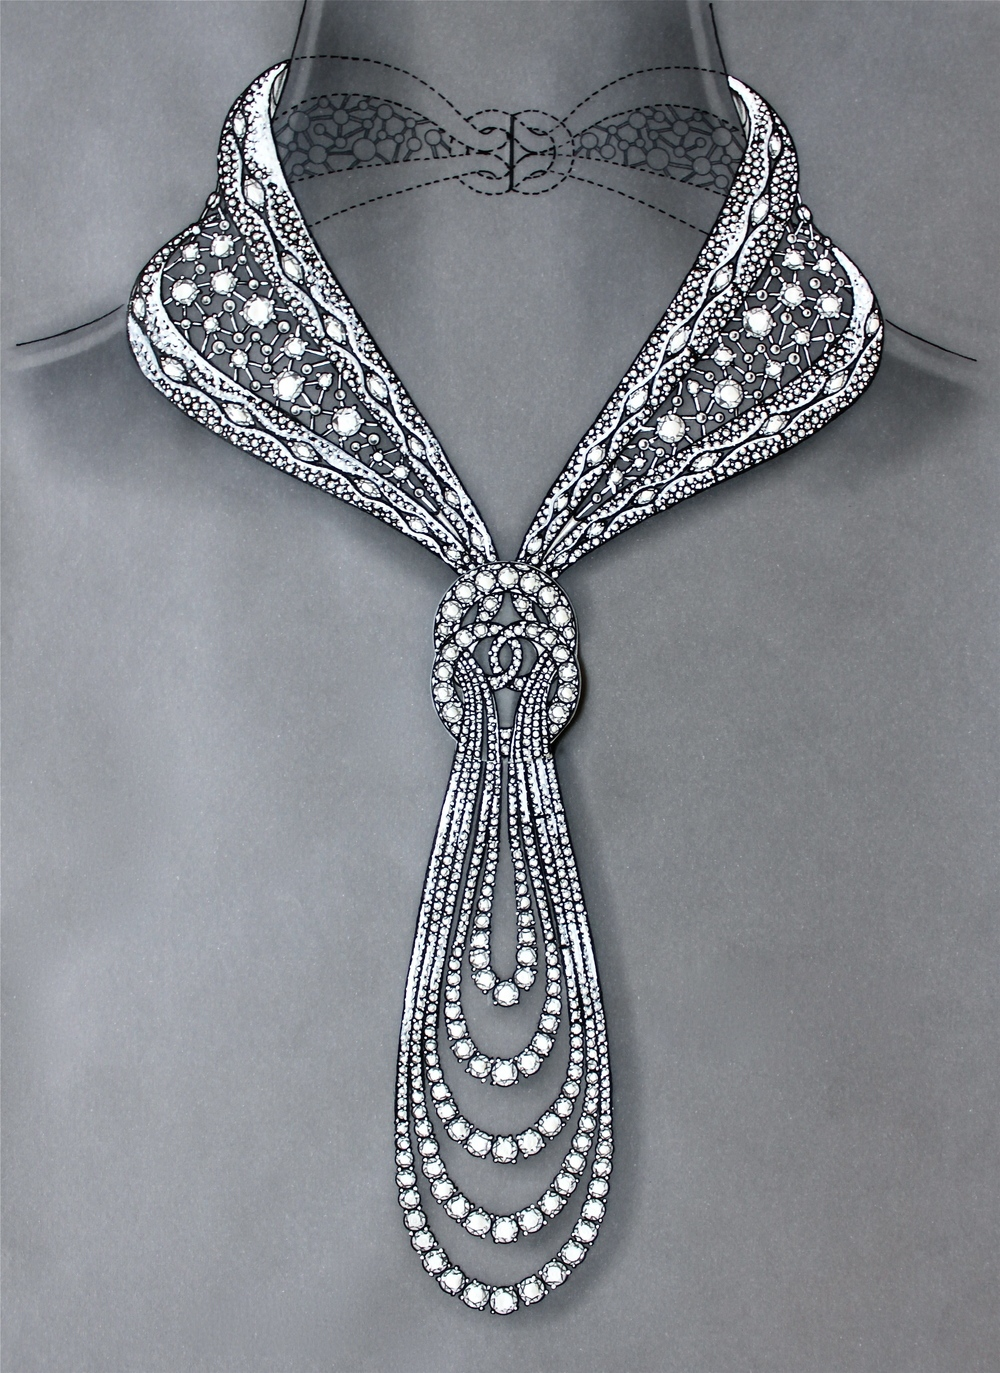 Original hand-drawn blueprint for Eternal diamond necklace by ©Reena Ahluwalia